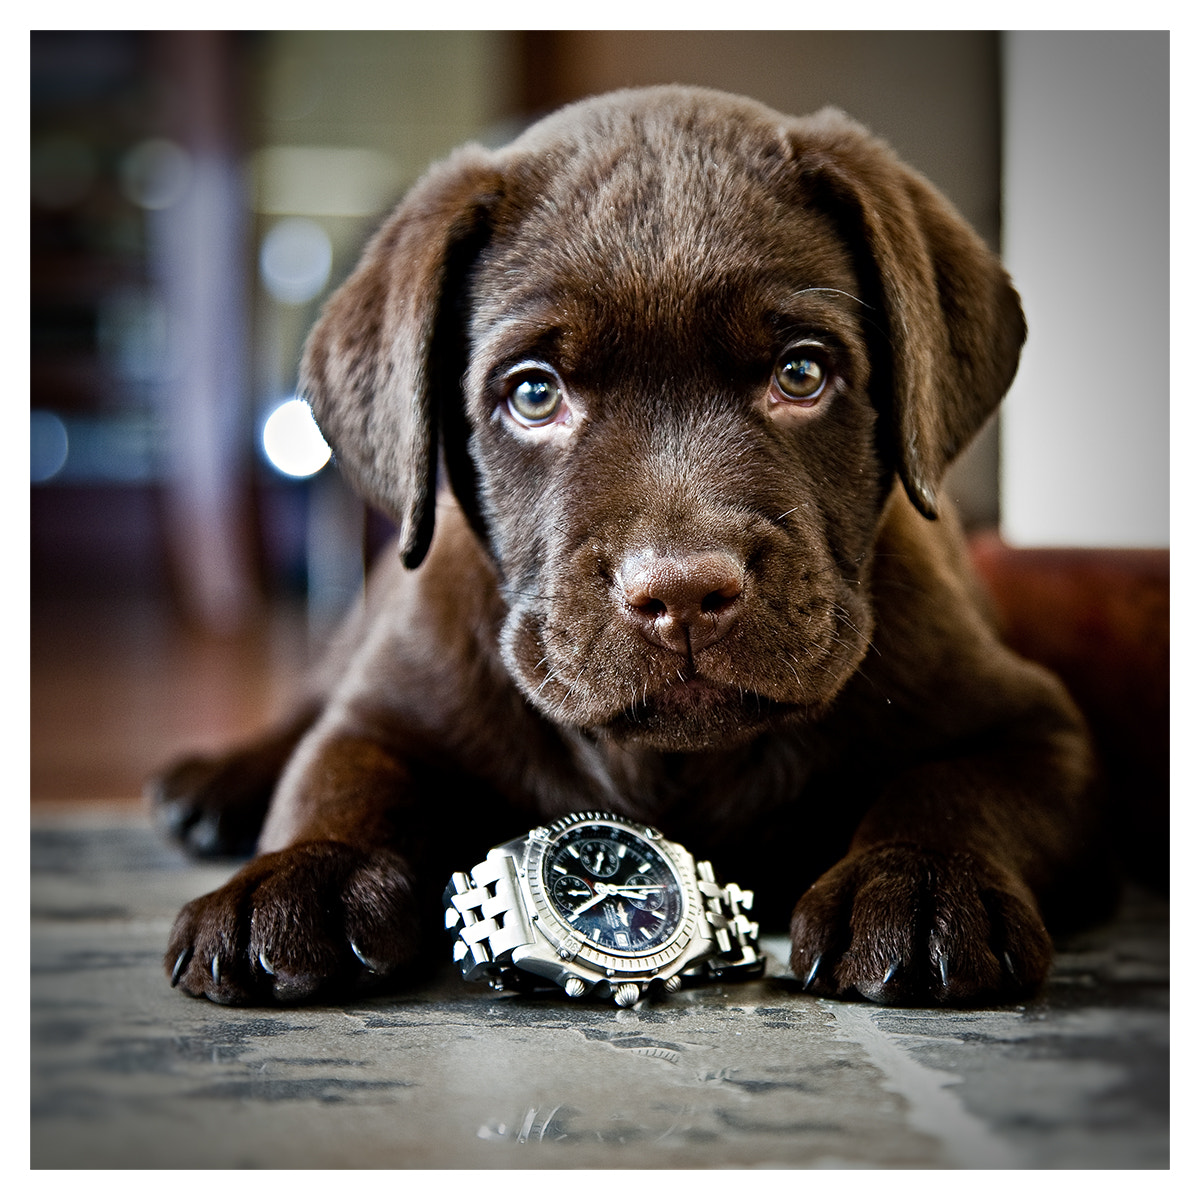 Photograph Puppy by Sergey Eronin on 500px